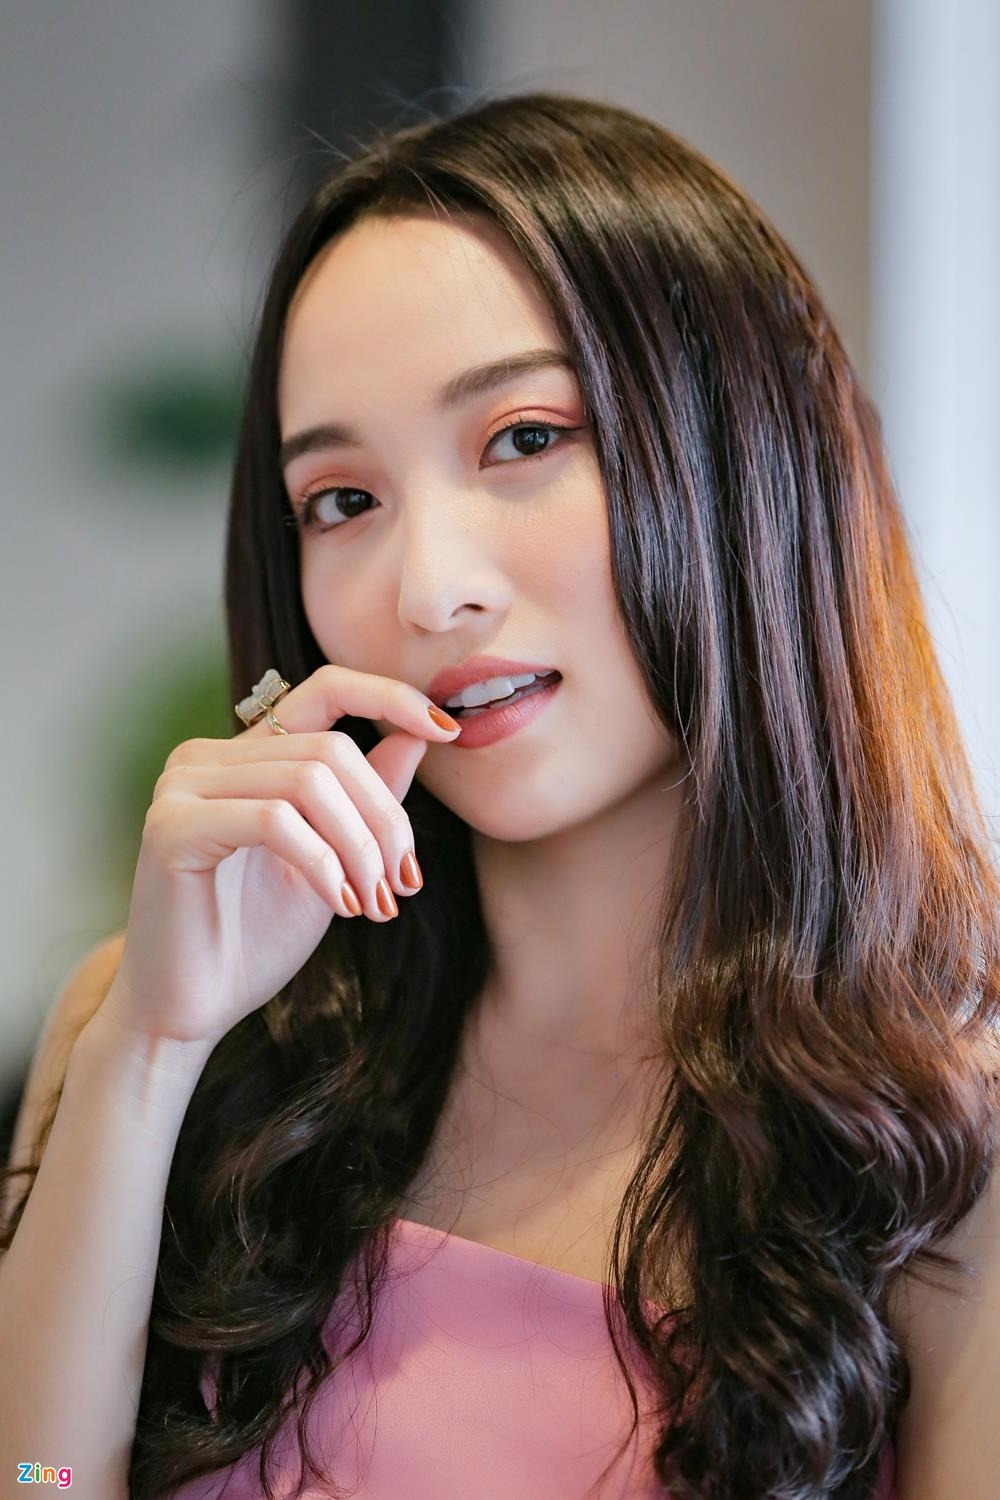 Dien vien Nhung co gai trong thanh pho anh 4